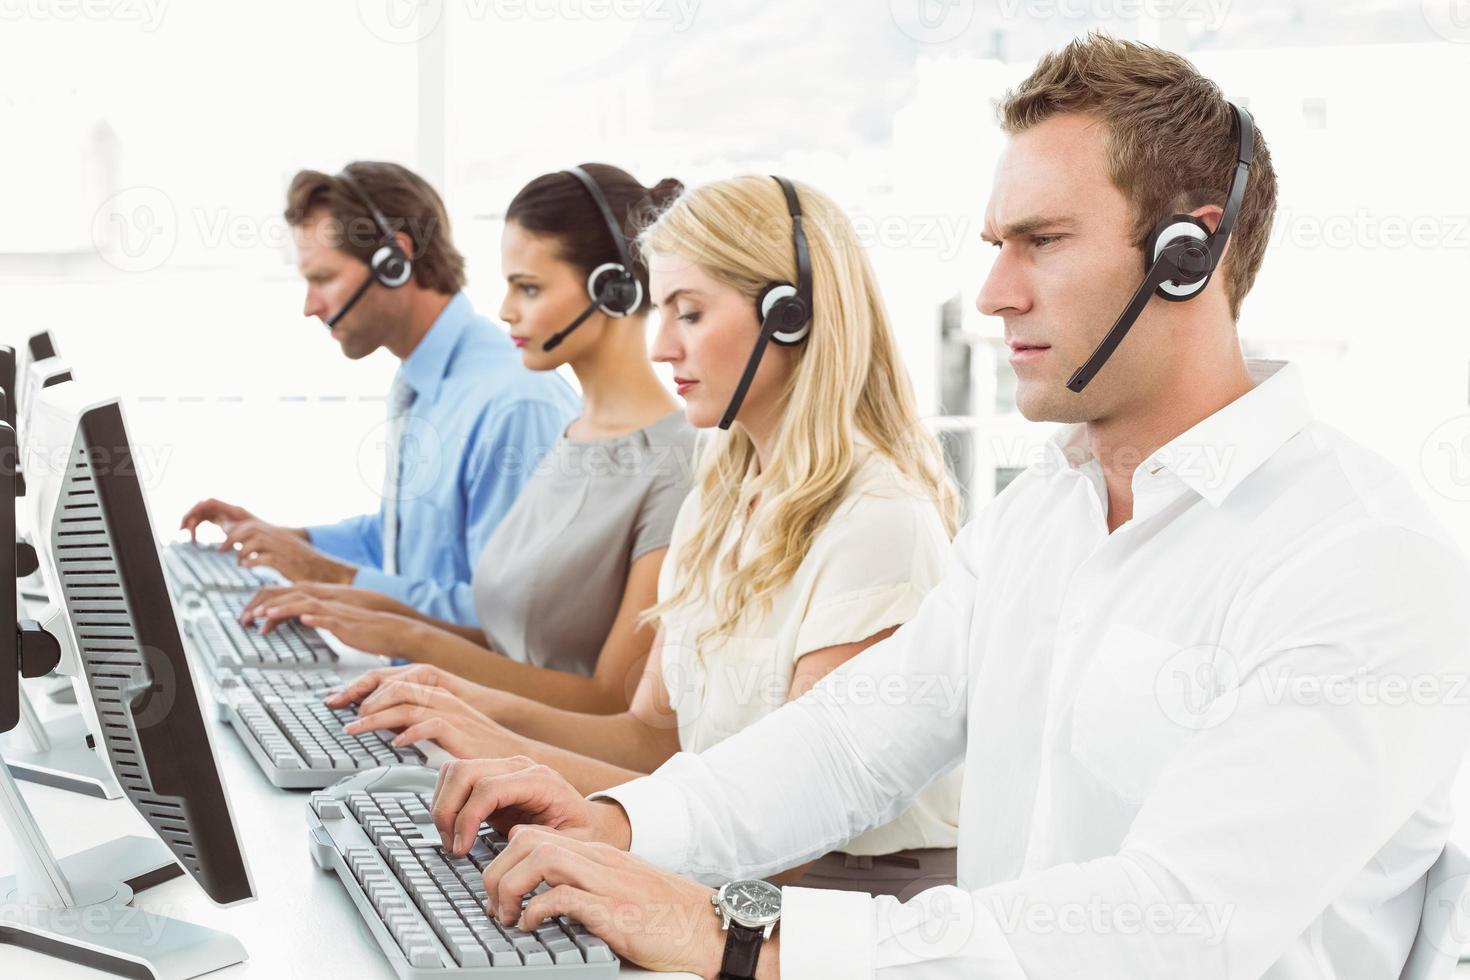 Business people with headsets using computers in office photo